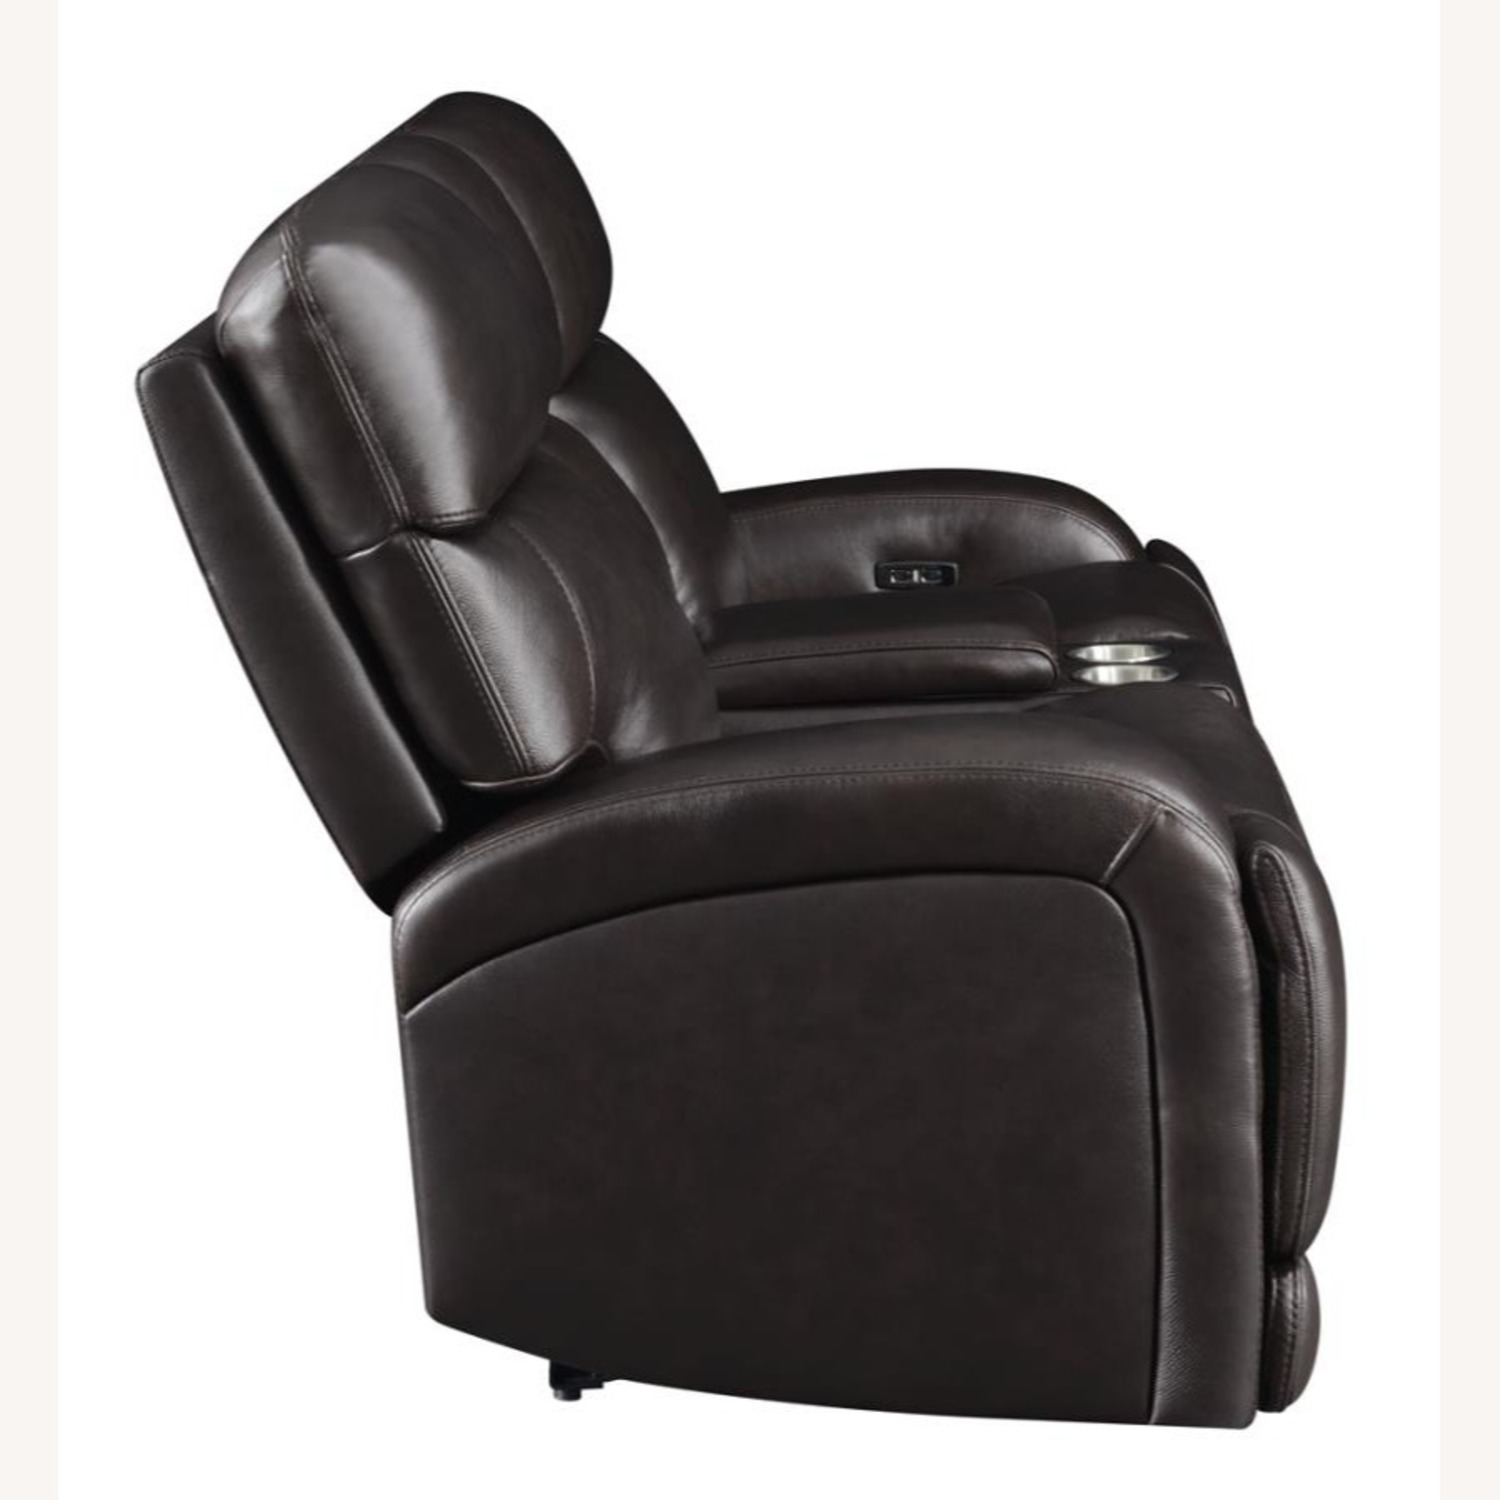 Power Loveseat W/ Console In Dark Brown Leather - image-3